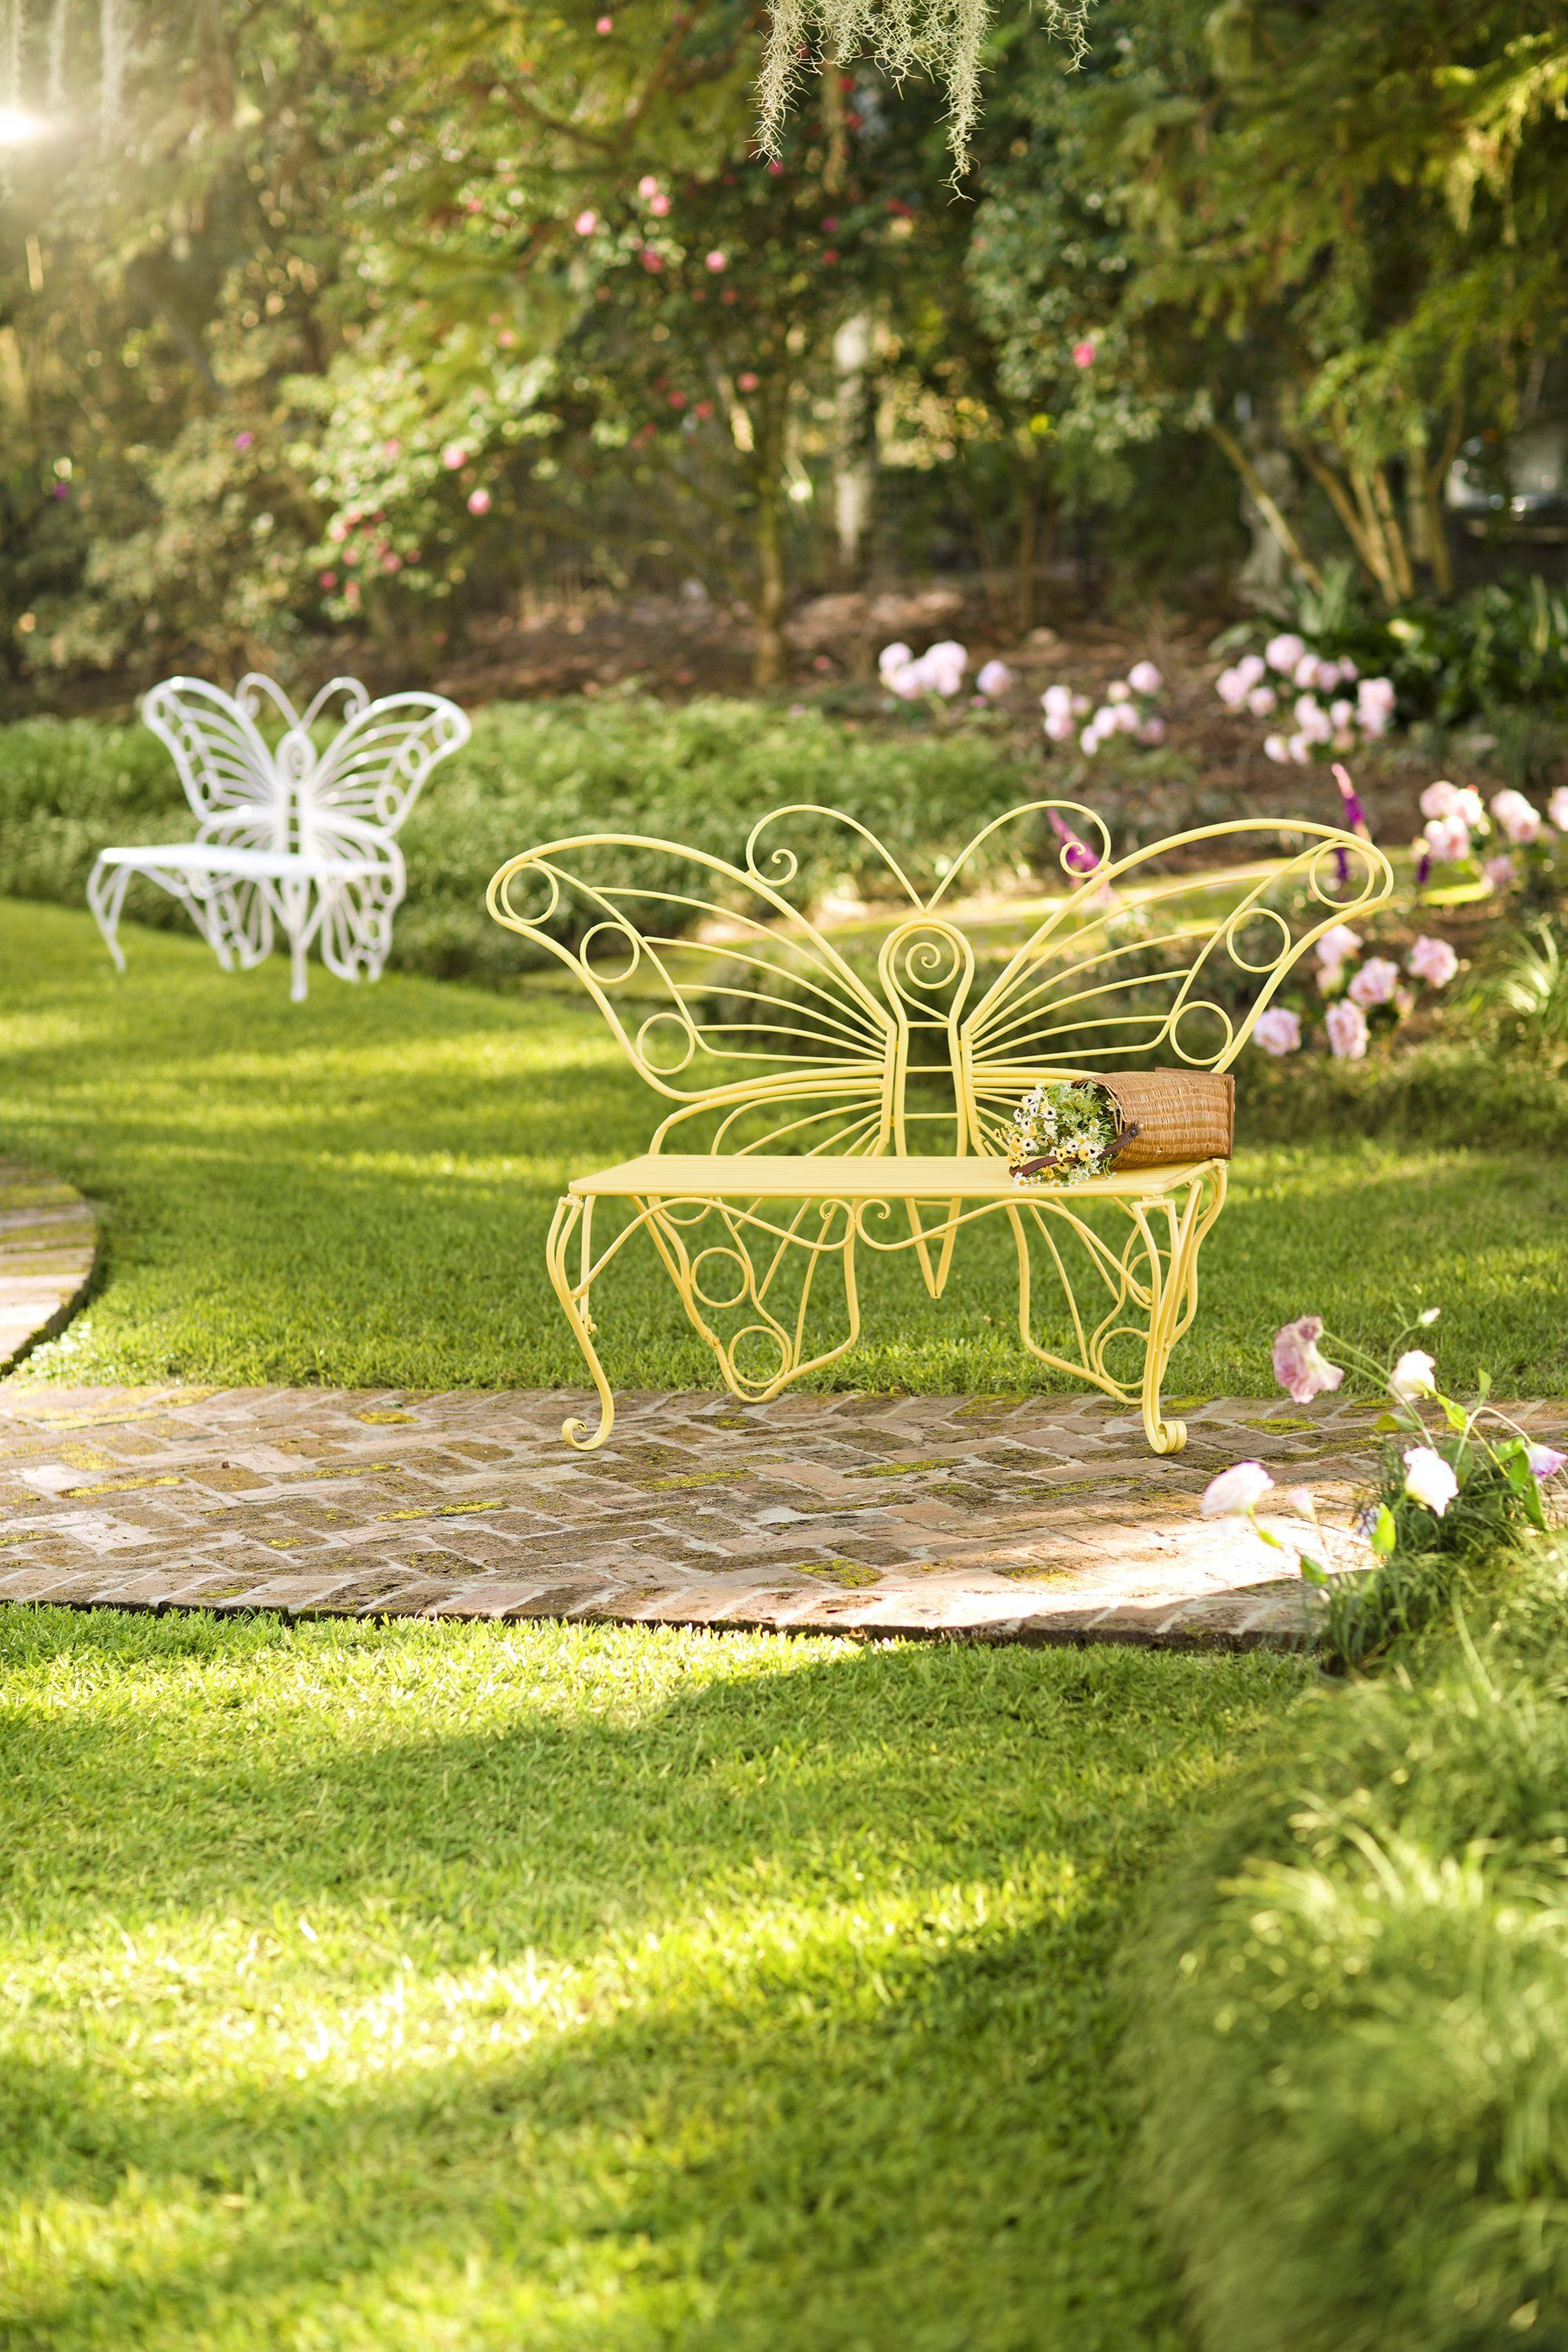 Add An Elegant Look To Your Garden Or Landscape With Our Metal